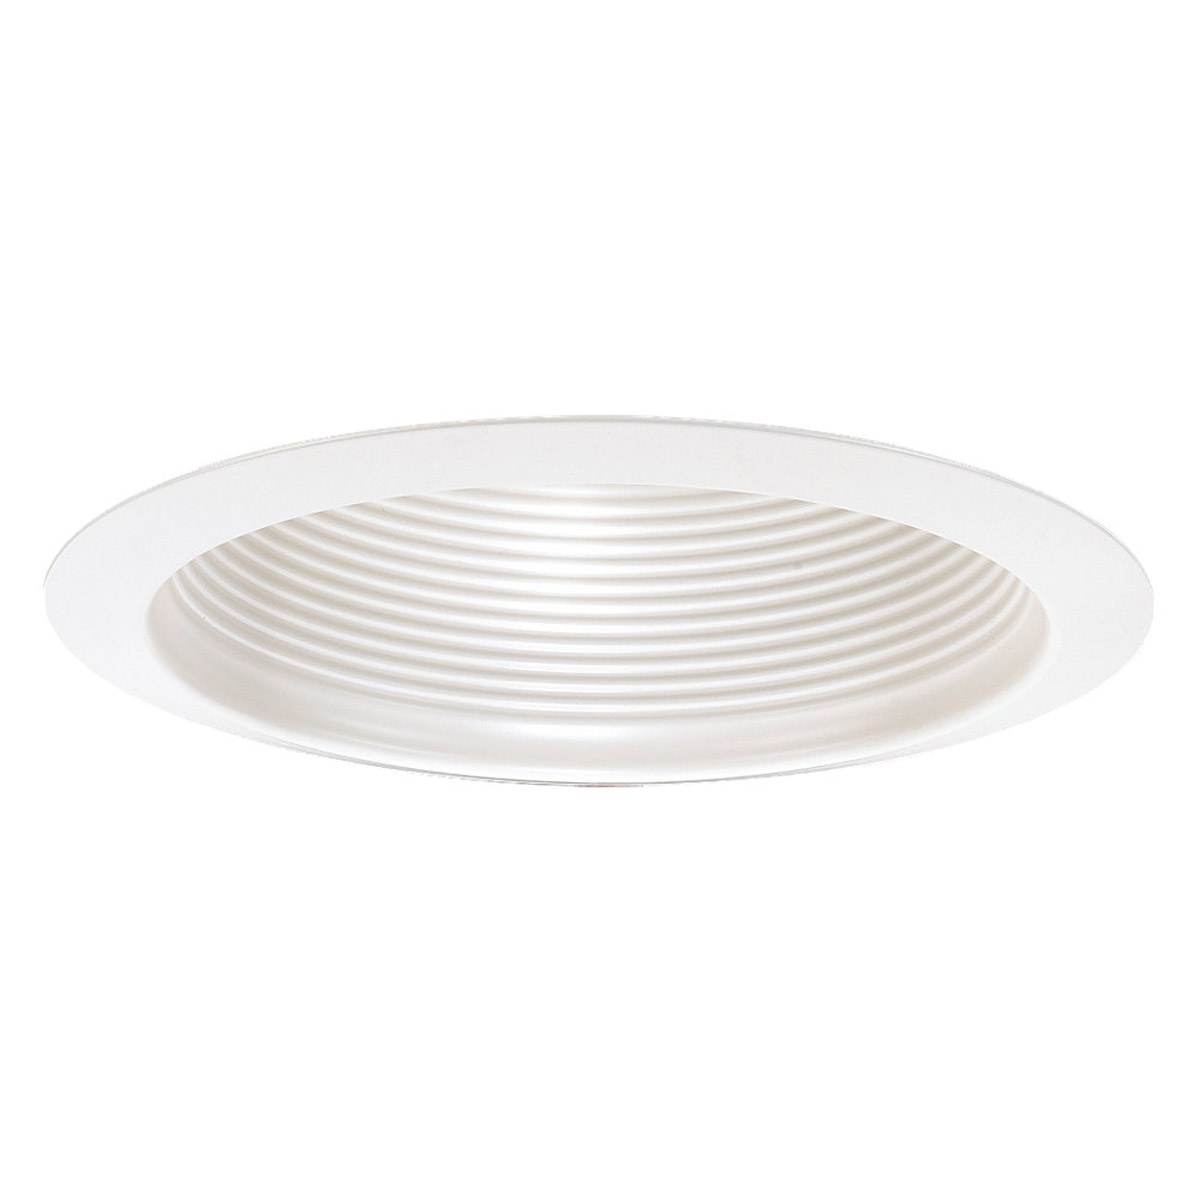 Sea Gull 1157AT-14 Signature White Recessed Trim in White Baffle photo